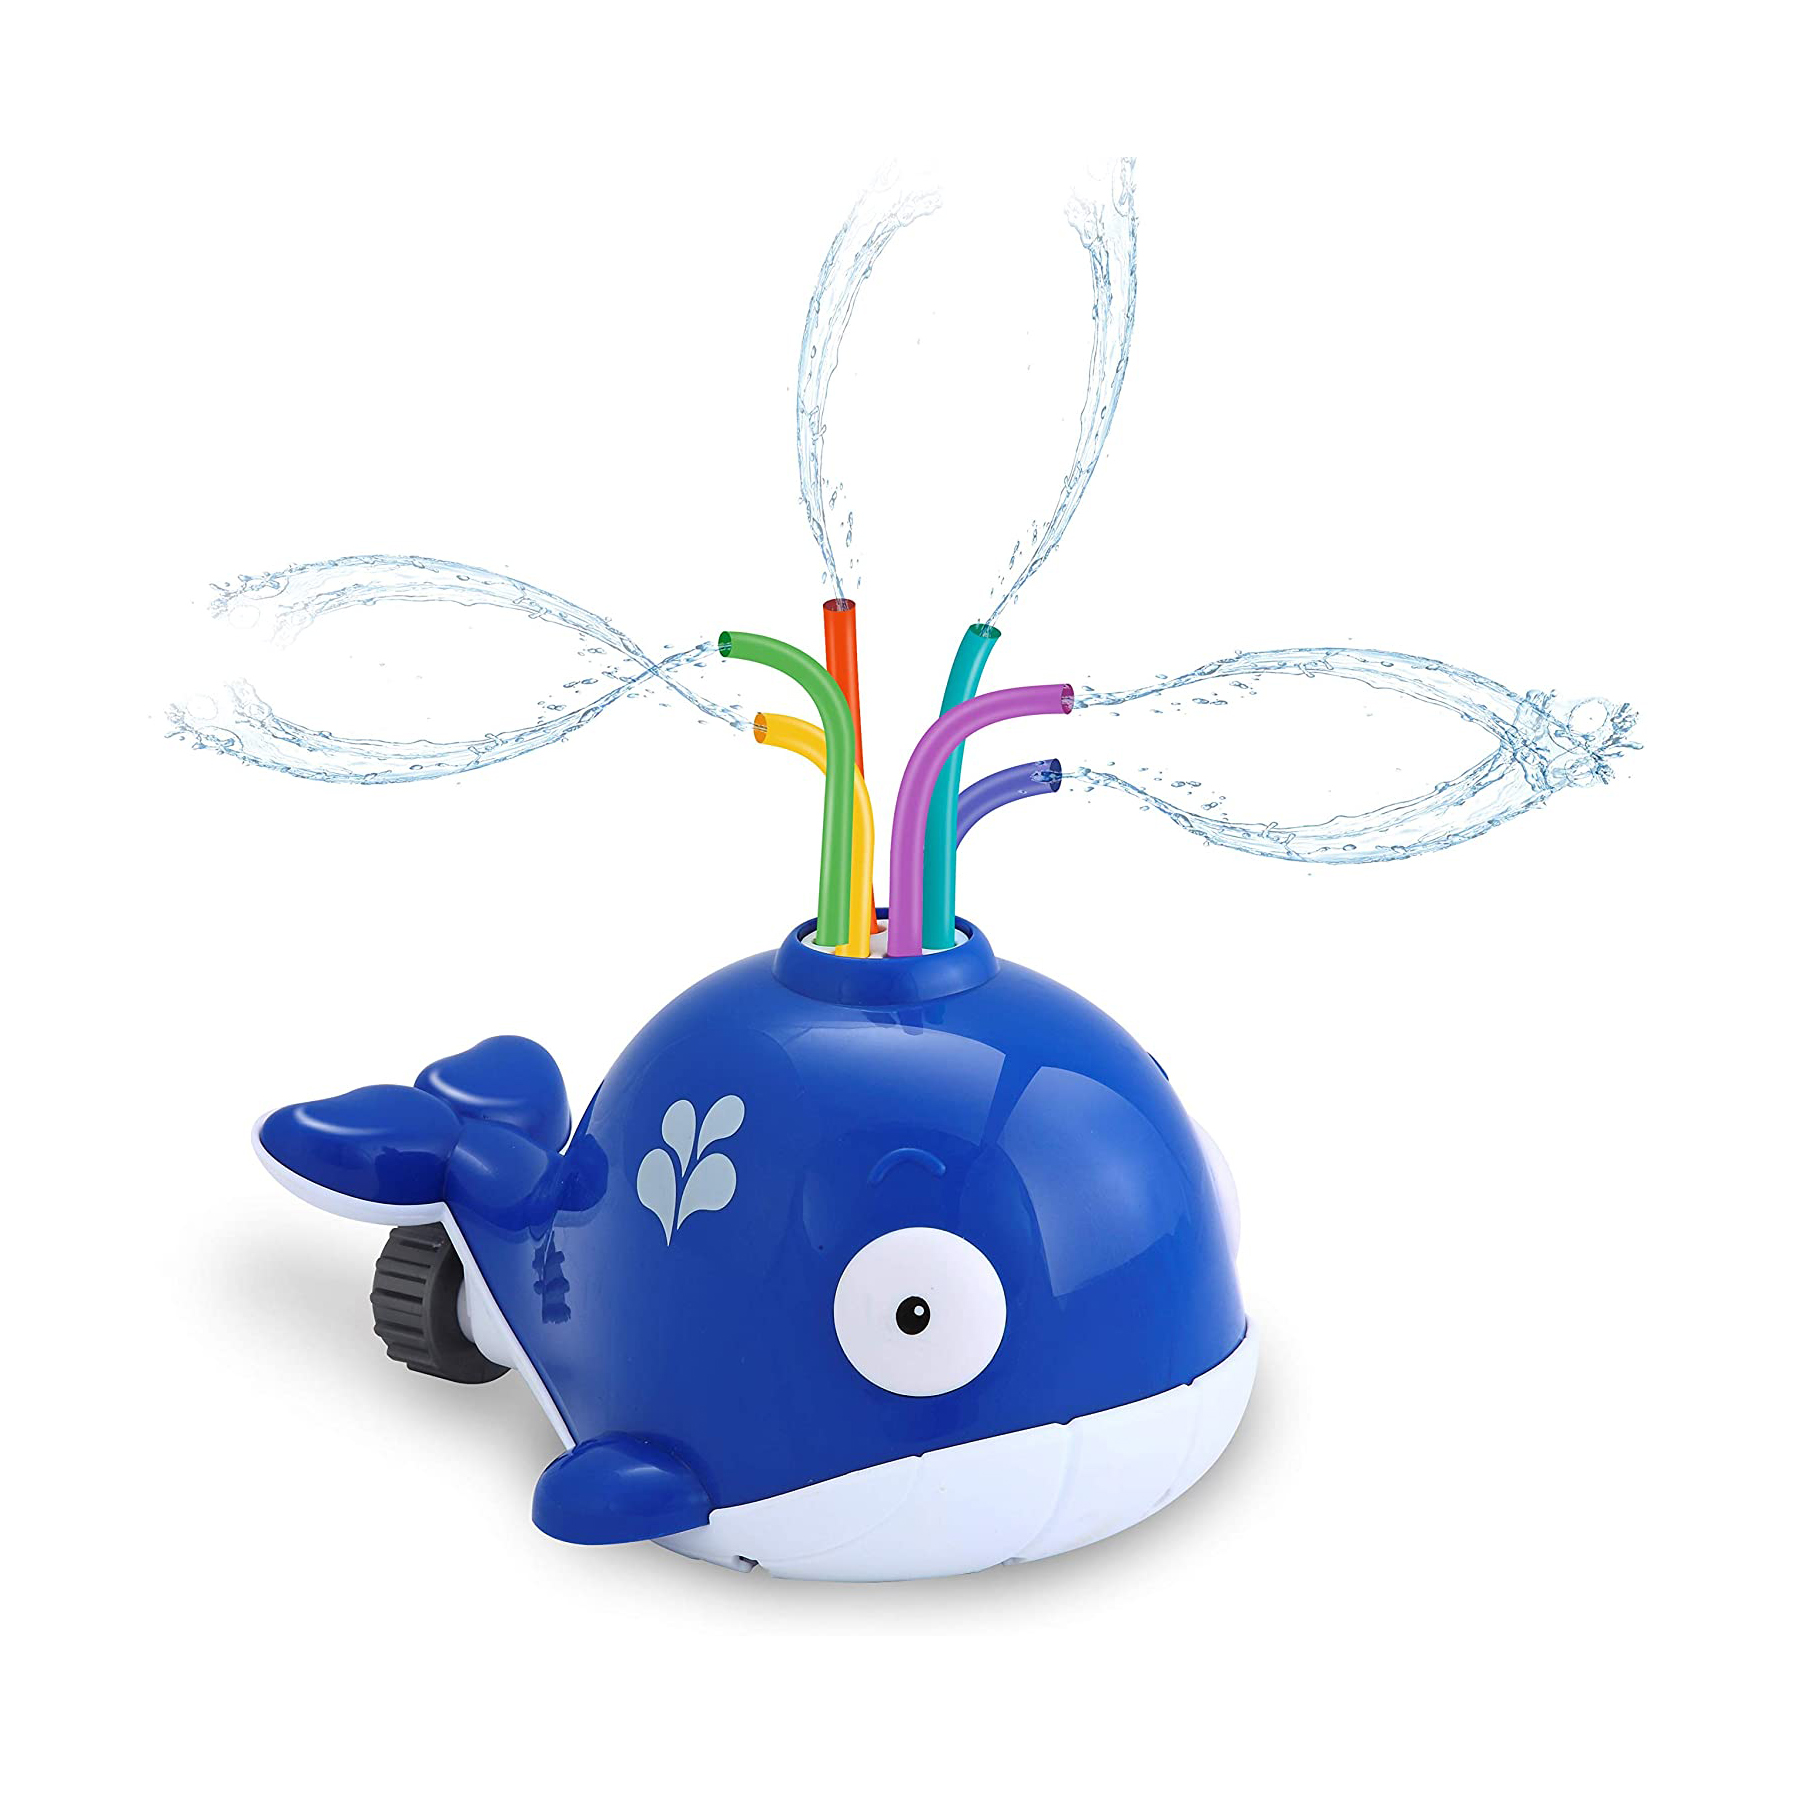 Splash Whale Yard Water Sprinkler Lawn Sprinkler for <strong>Kids</strong> <strong>Outdoor</strong> Sprinkler <strong>Toy</strong>